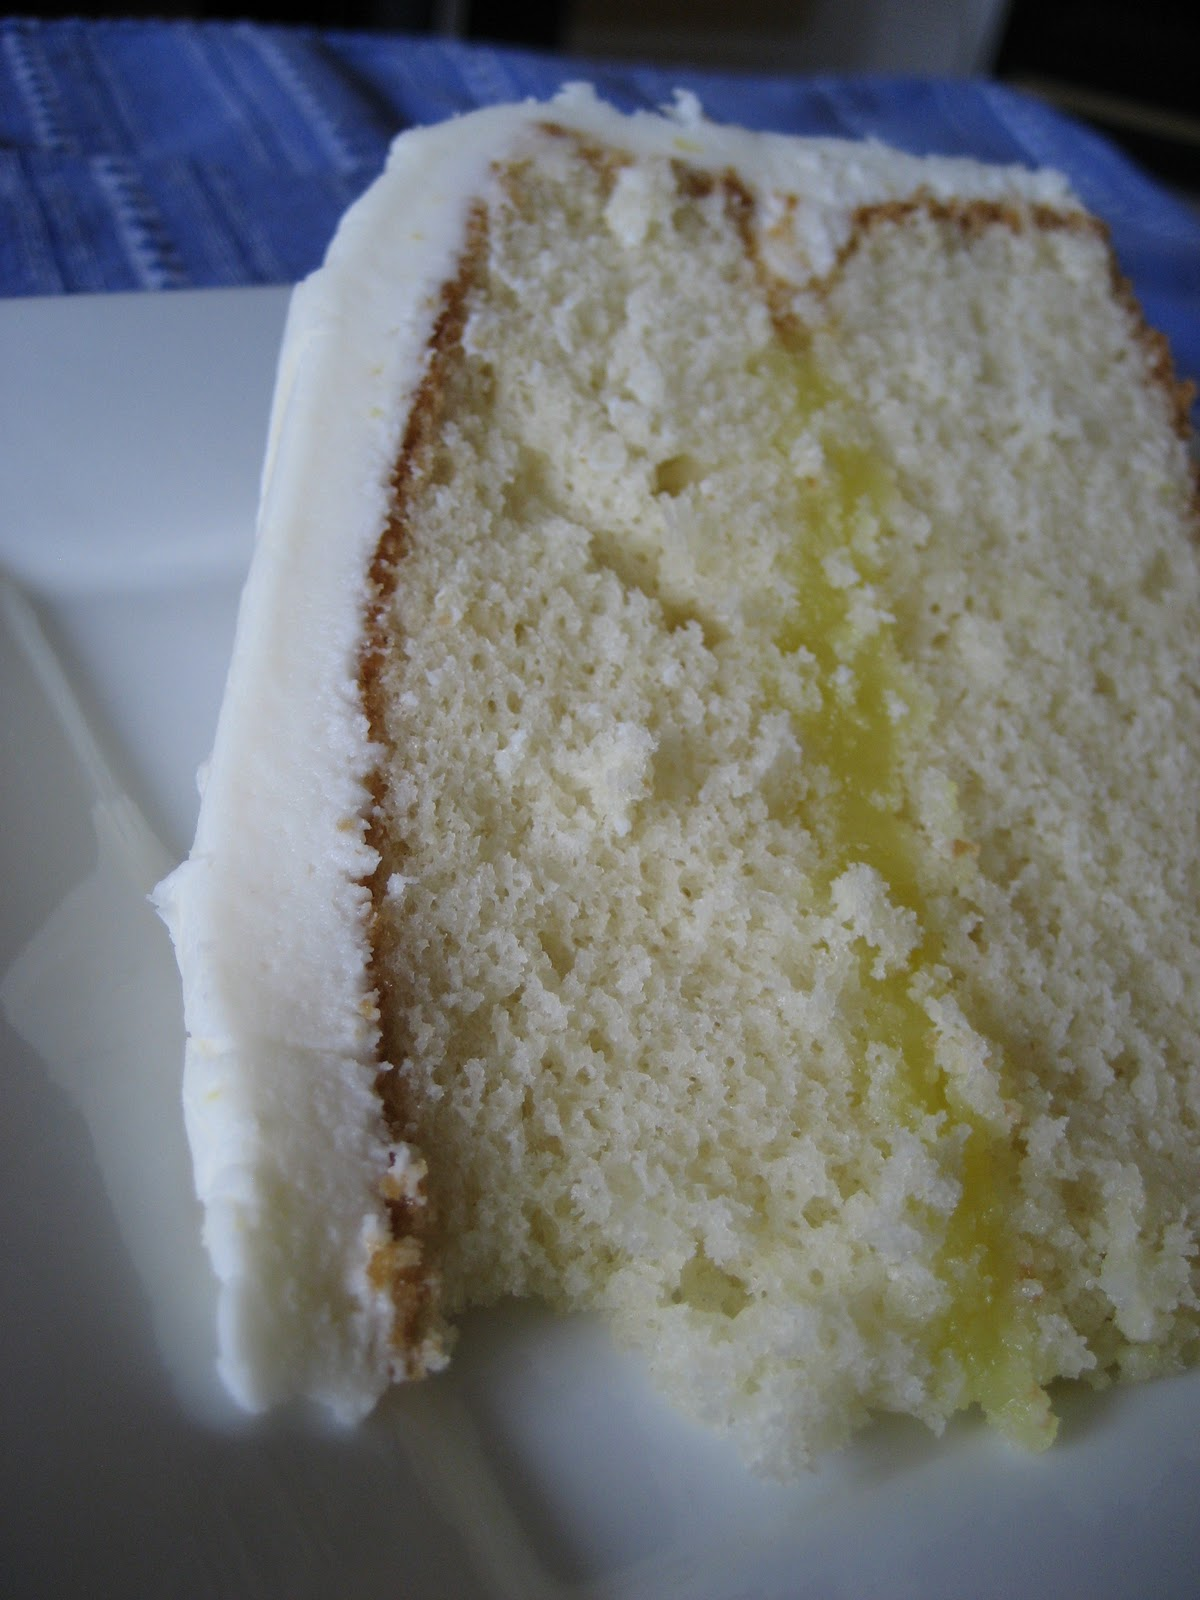 White Cake with Lemon Filling and Lemon Cream Cheese Frosting